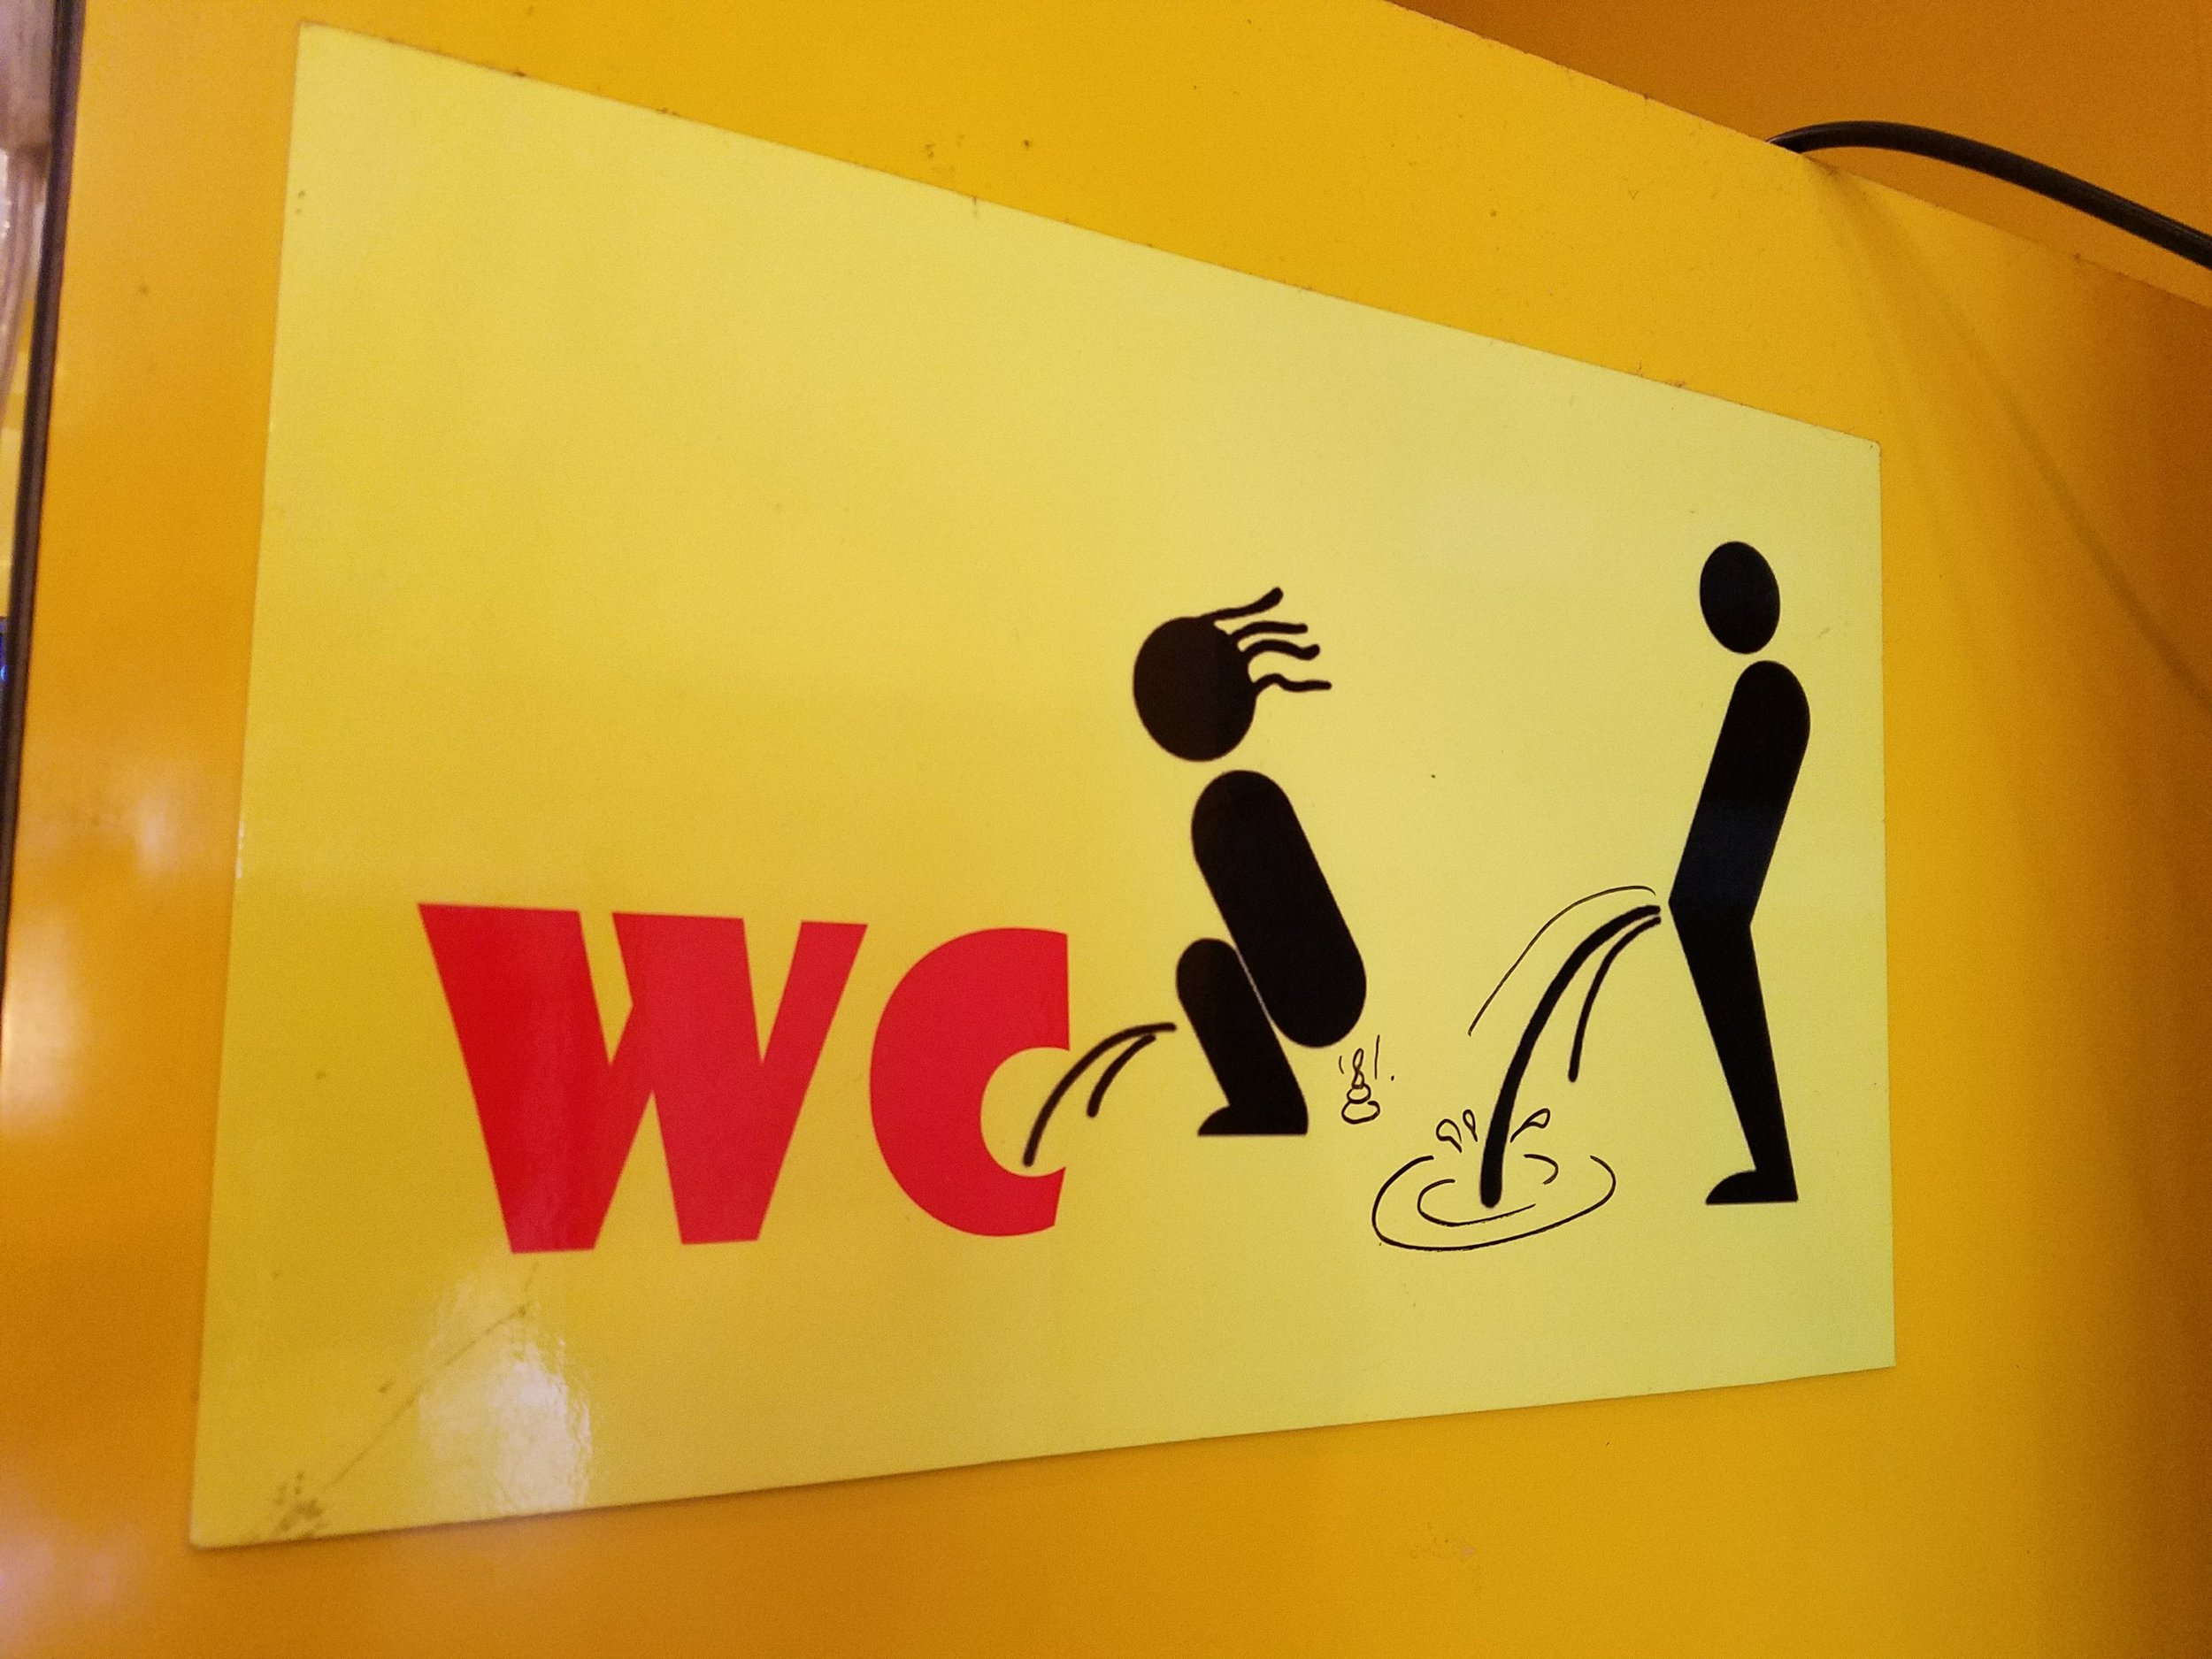 A rare unisex toilet sign in Vietnam